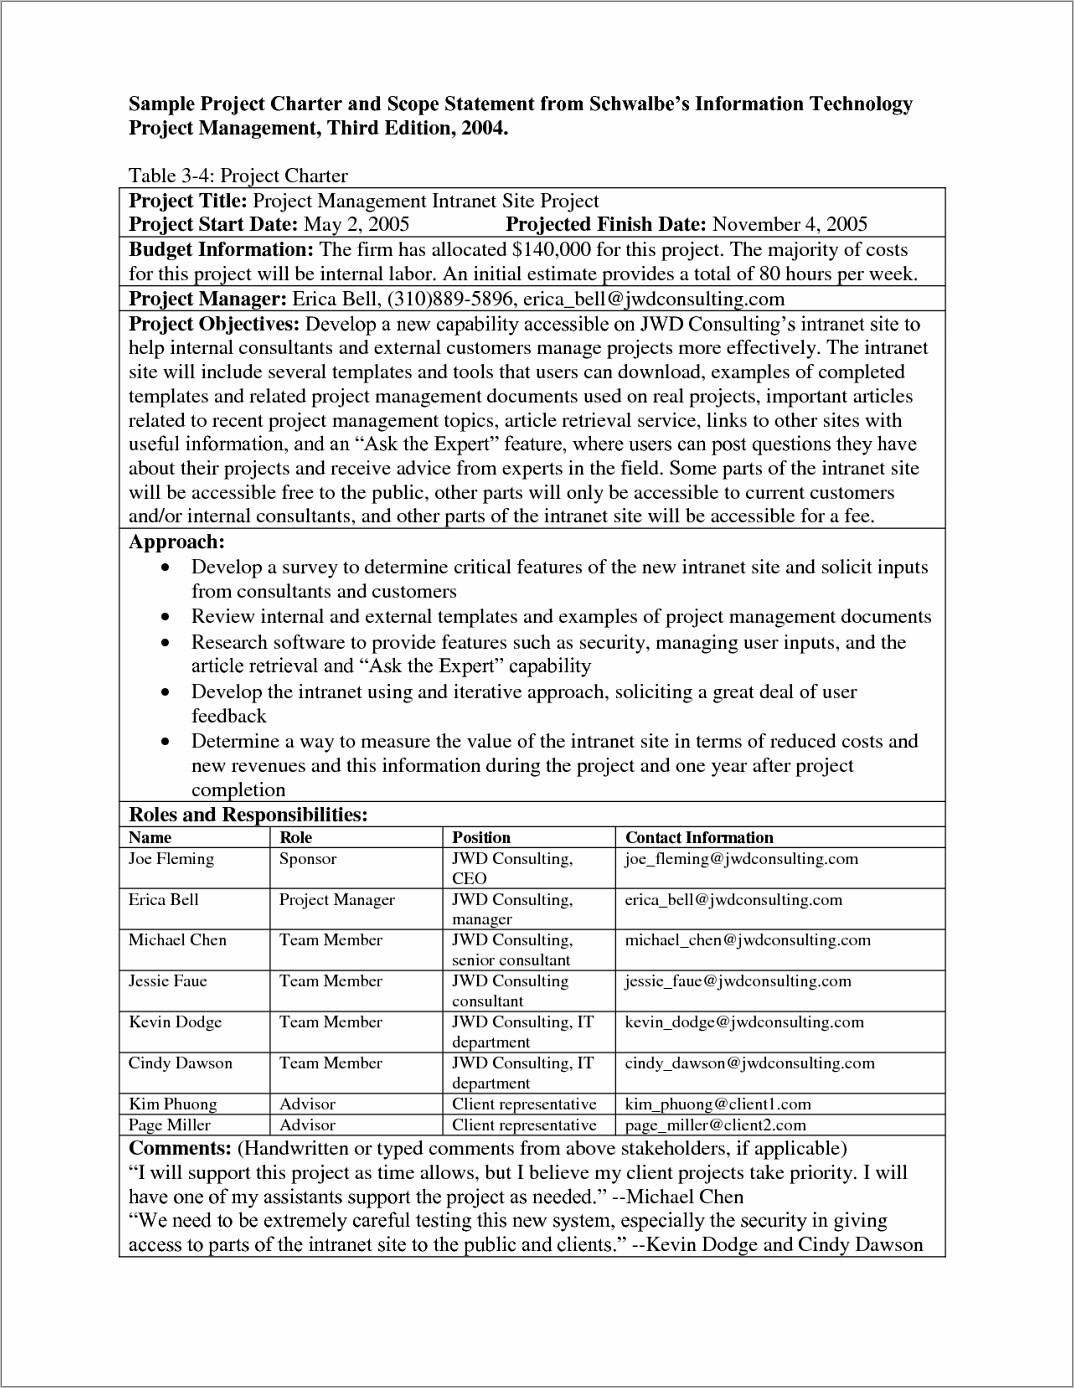 Project Management Charter Sample